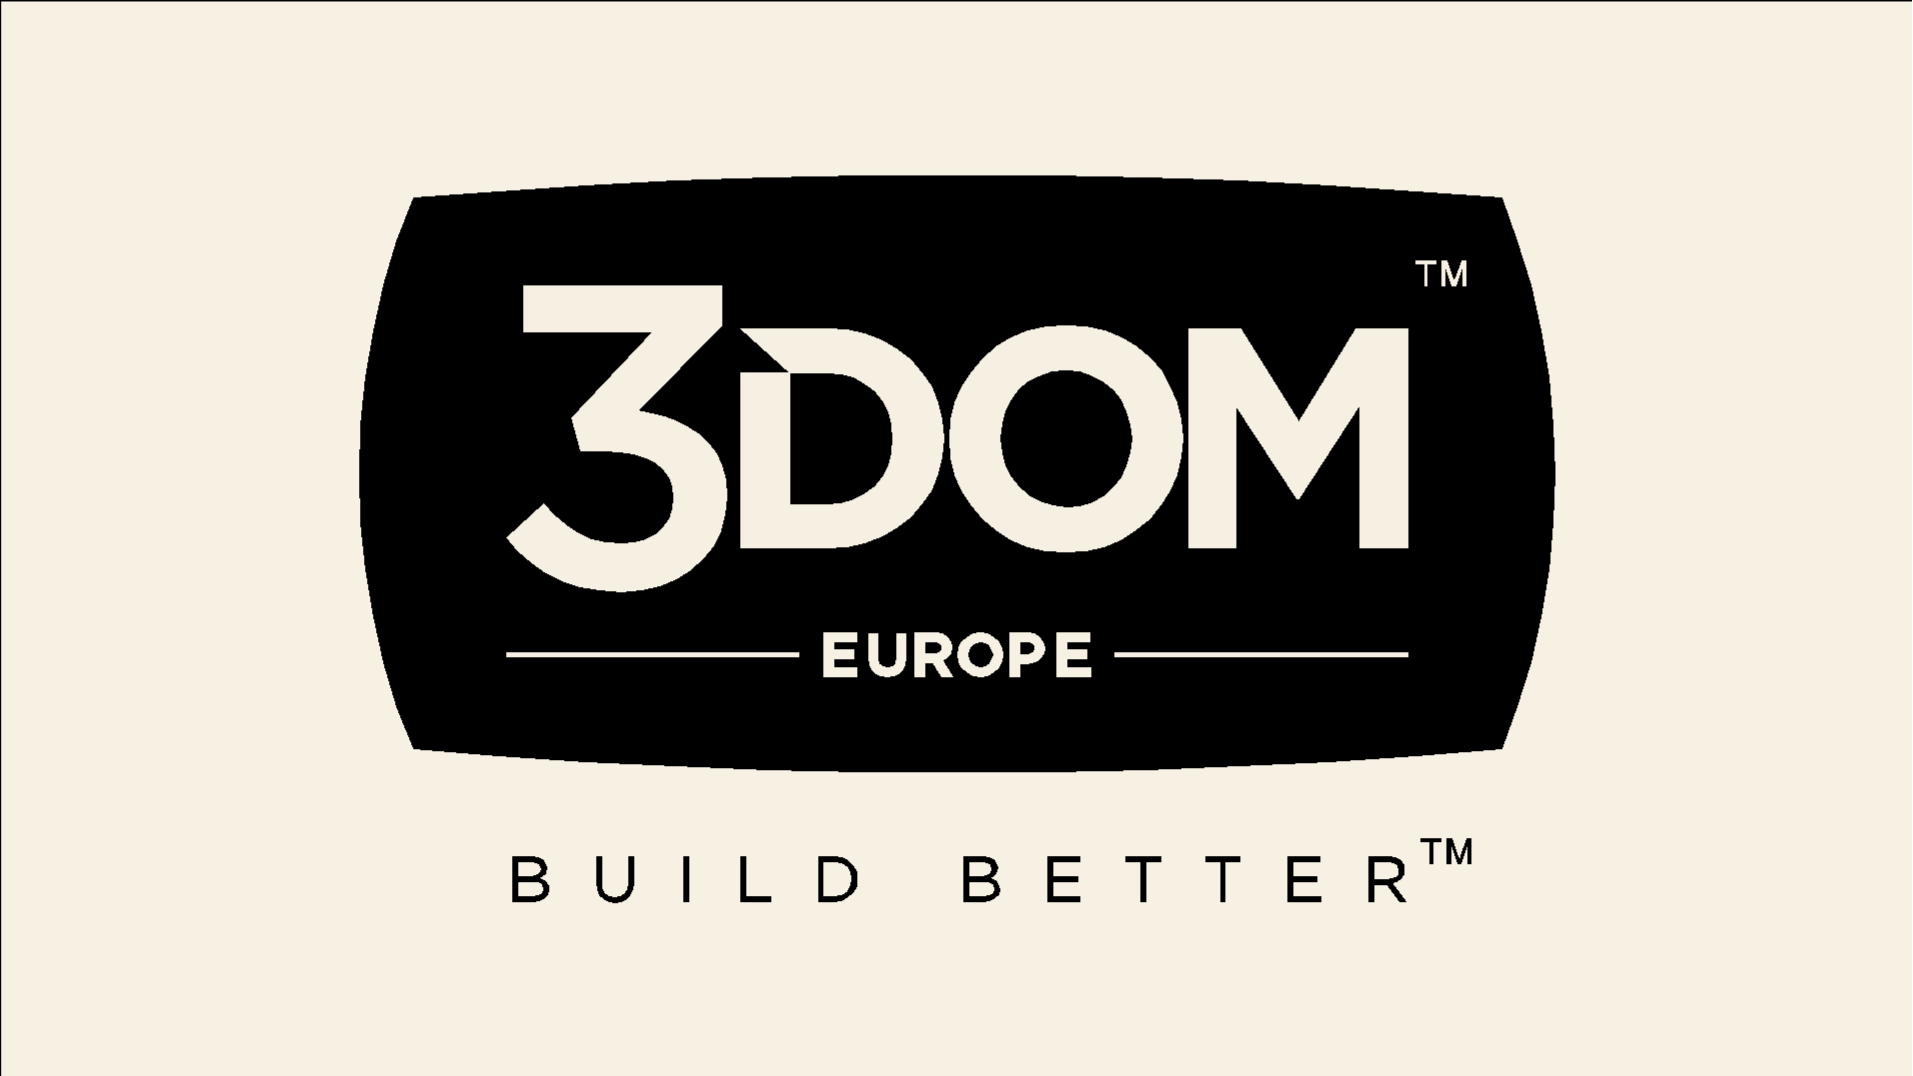 3Dom Europe to launch at TCT Show 2015